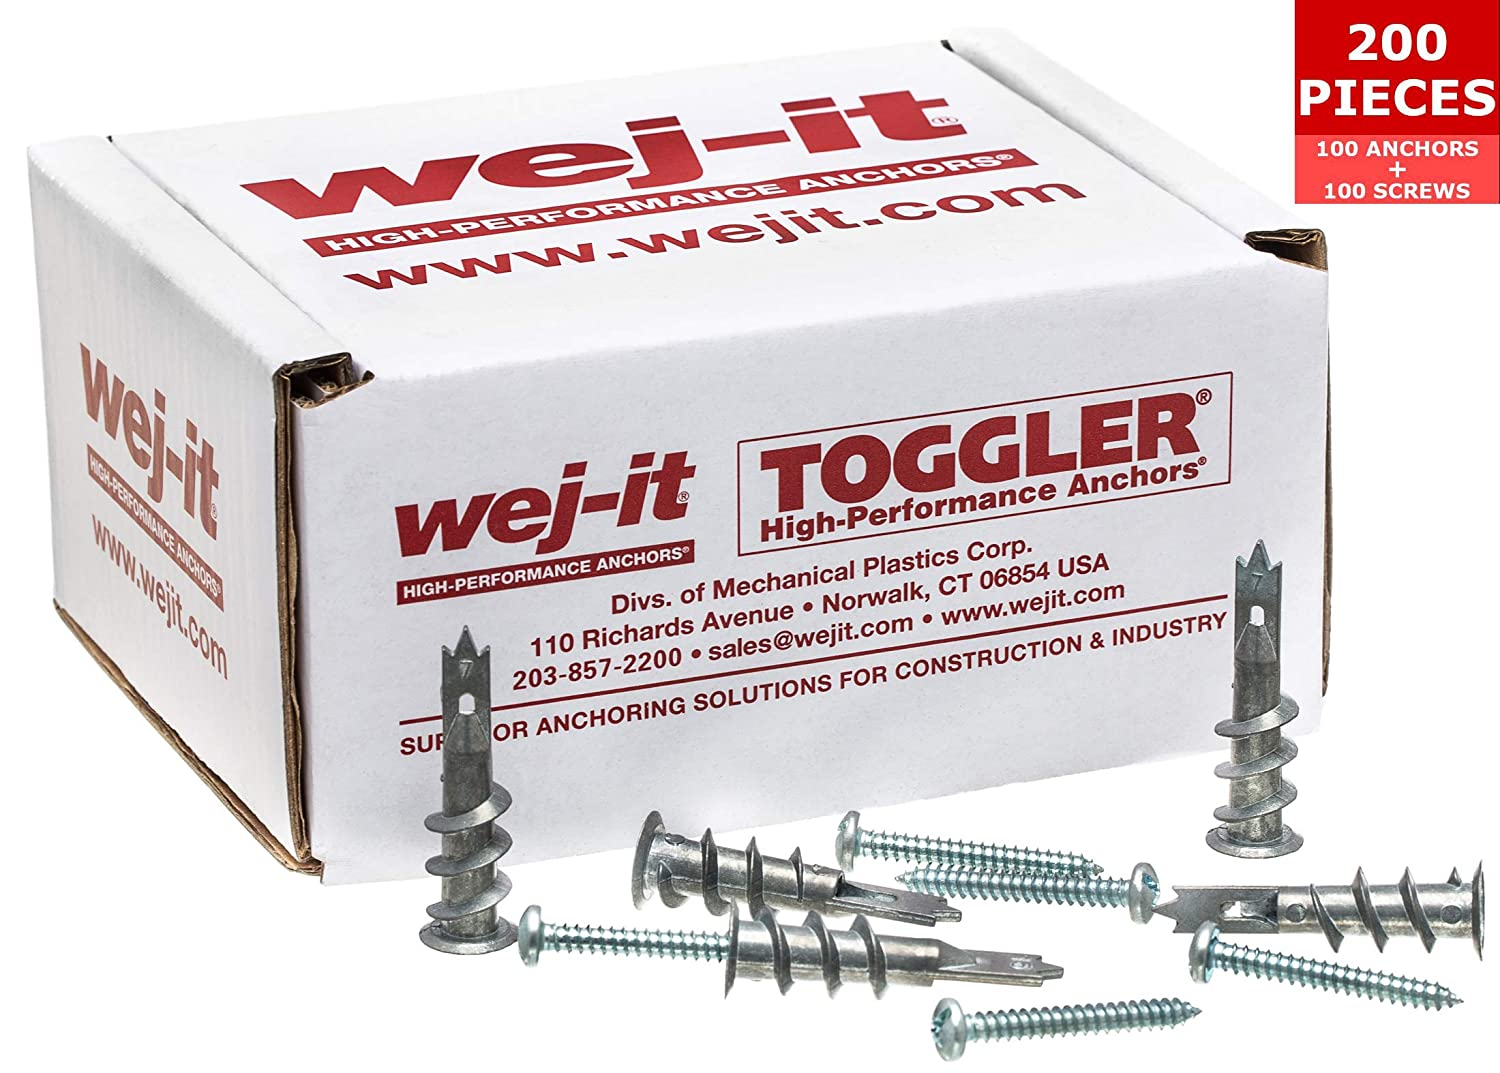 Industrial Quality Screw /& Wallplug Kit Zinc Alloy - Metal 200 Pcs 100 Anchors and 100 Screws Wej-It Self-Drilling Drywall Anchors Quick /& Hassle Free Wall Fastening /& Mounting